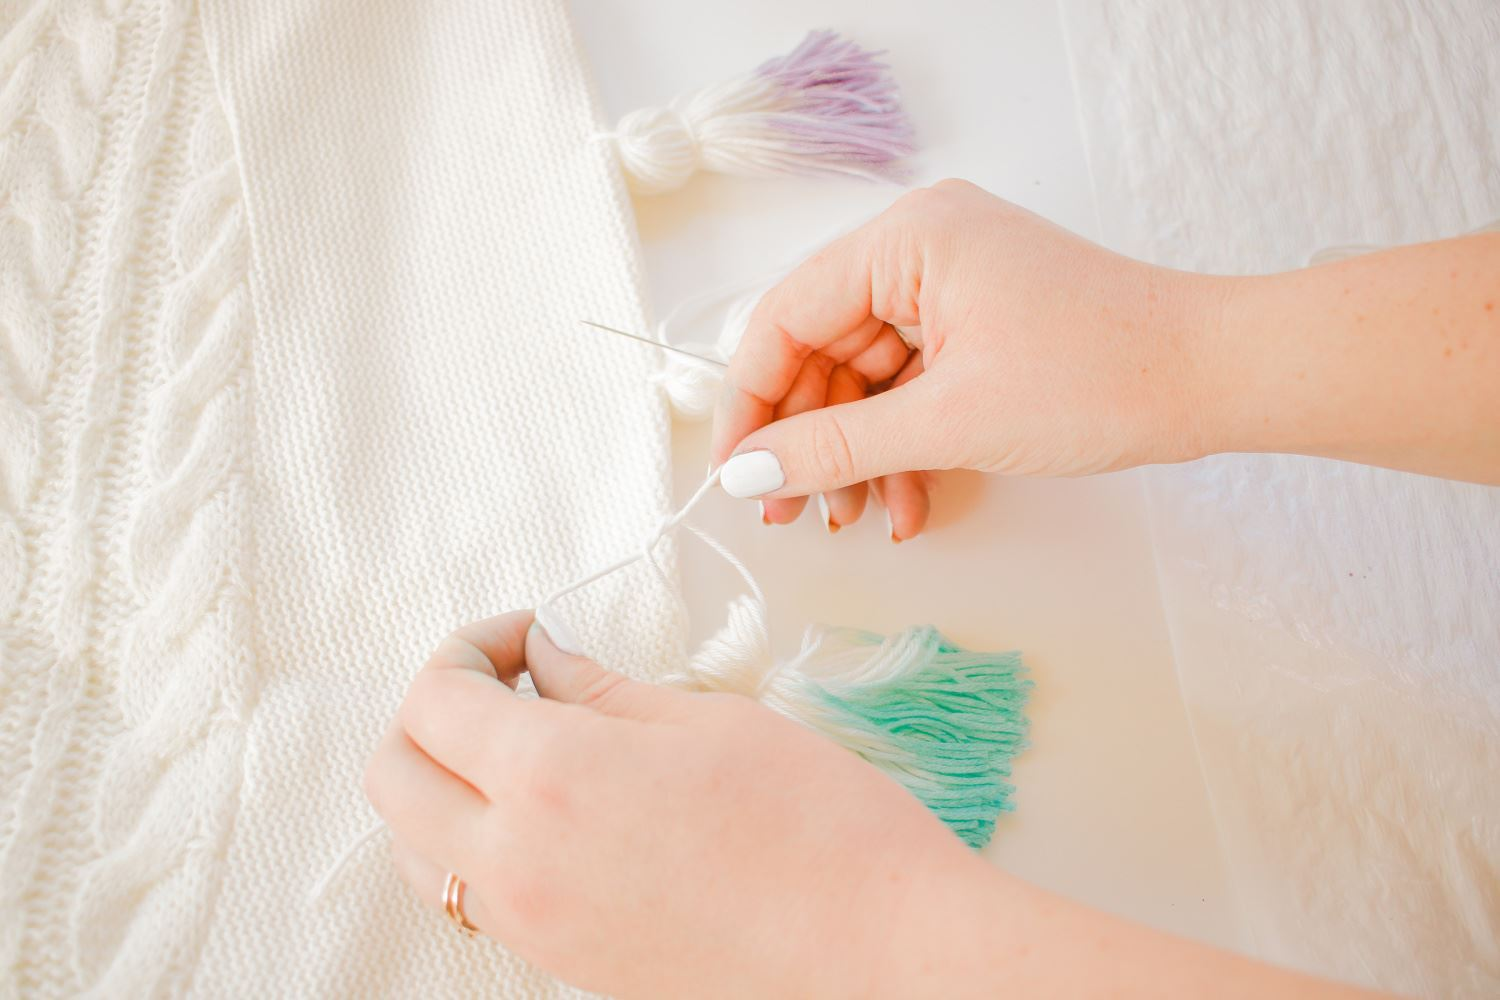 Sew and tie tassels to tree skirt